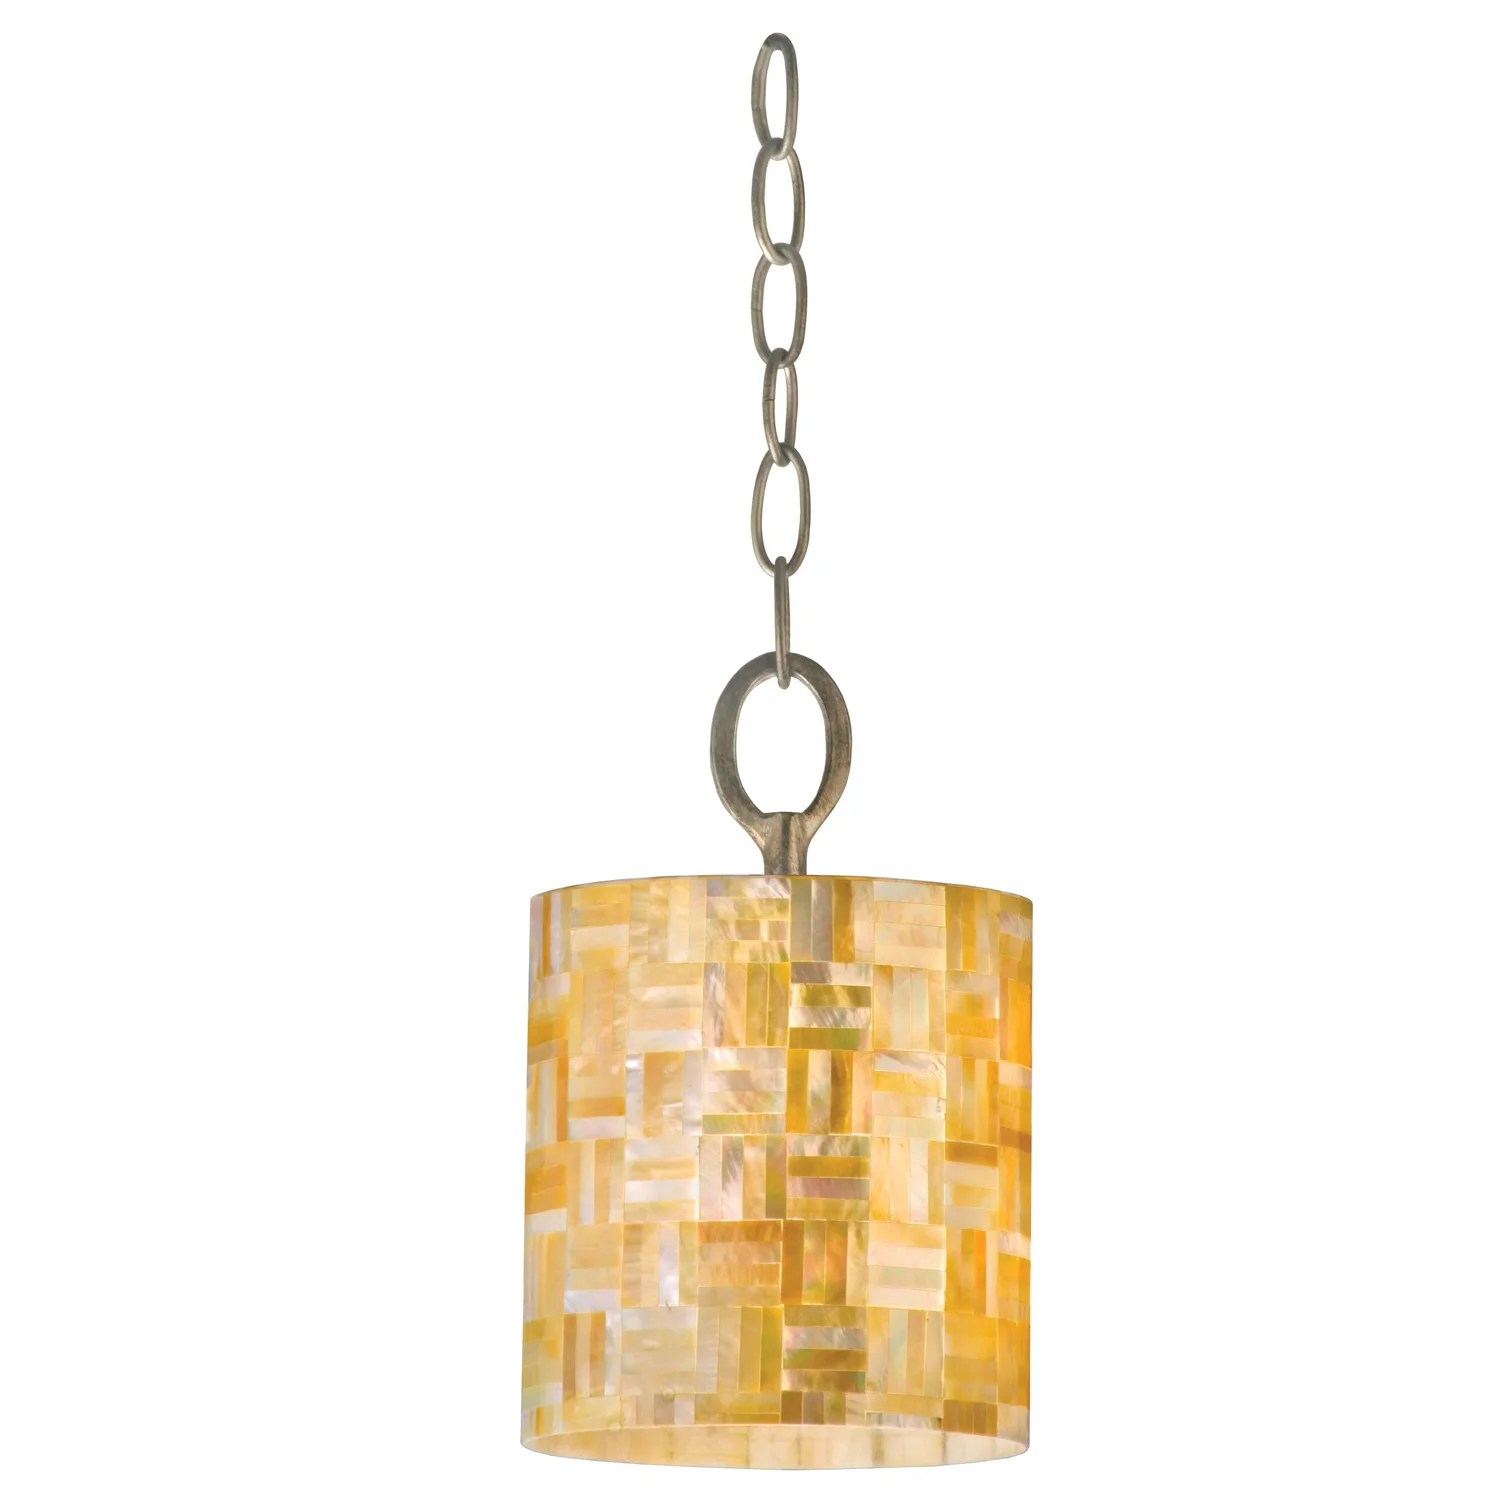 Mini Pendant Lights With Seeded Glass Shop Varaluz Naturals 1-light Yellow Mother-of-pearl Shell